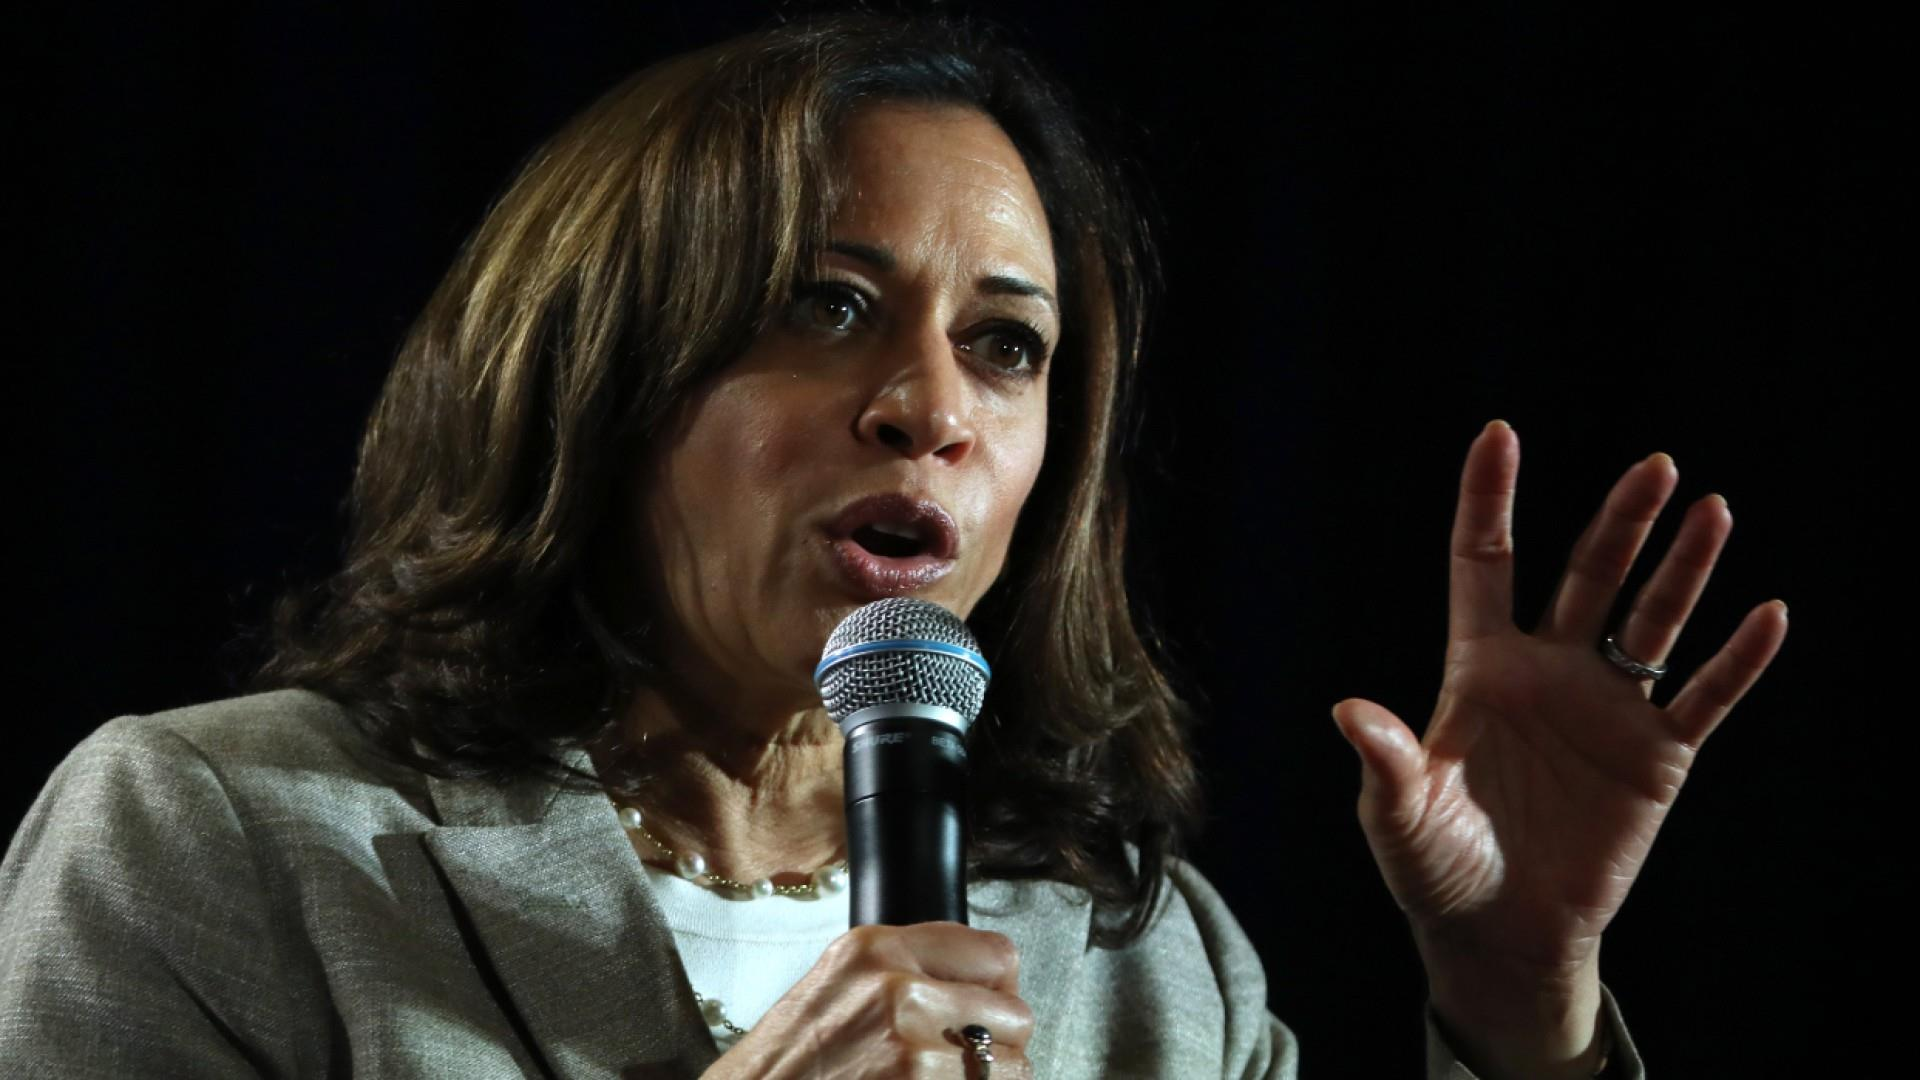 Kamala Harris on Trump's racist tweets: 'Vile, ignorant... how low can he go?'